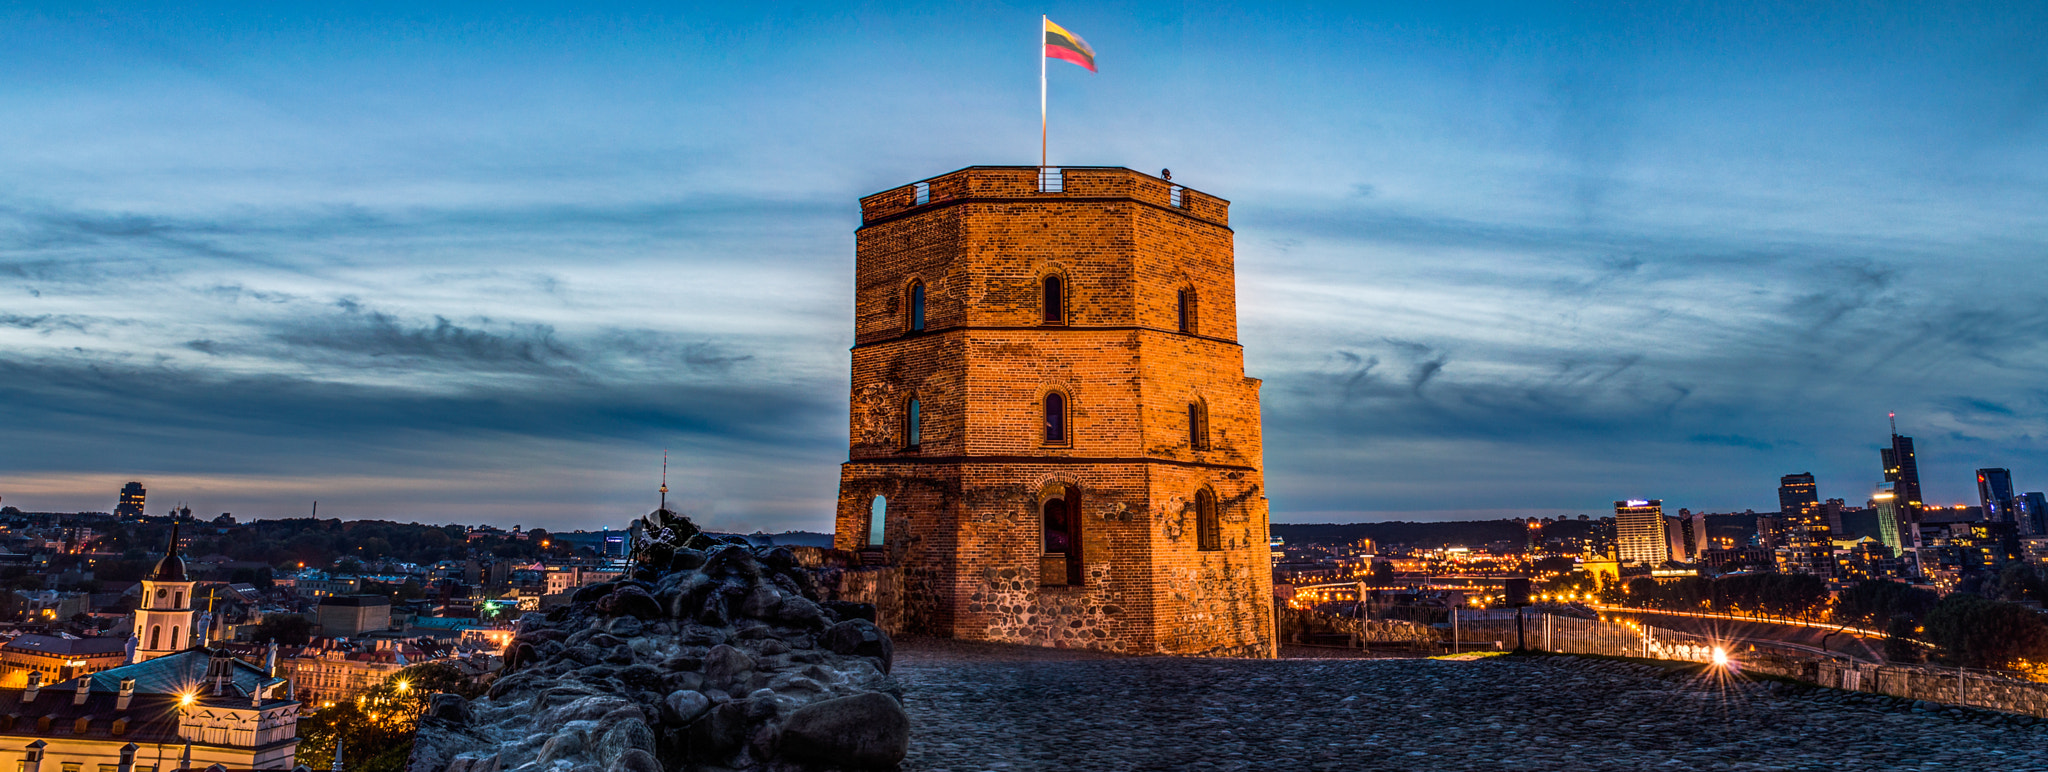 Photograph Gediminas Tower Panorama by Norbert Durko on 500px